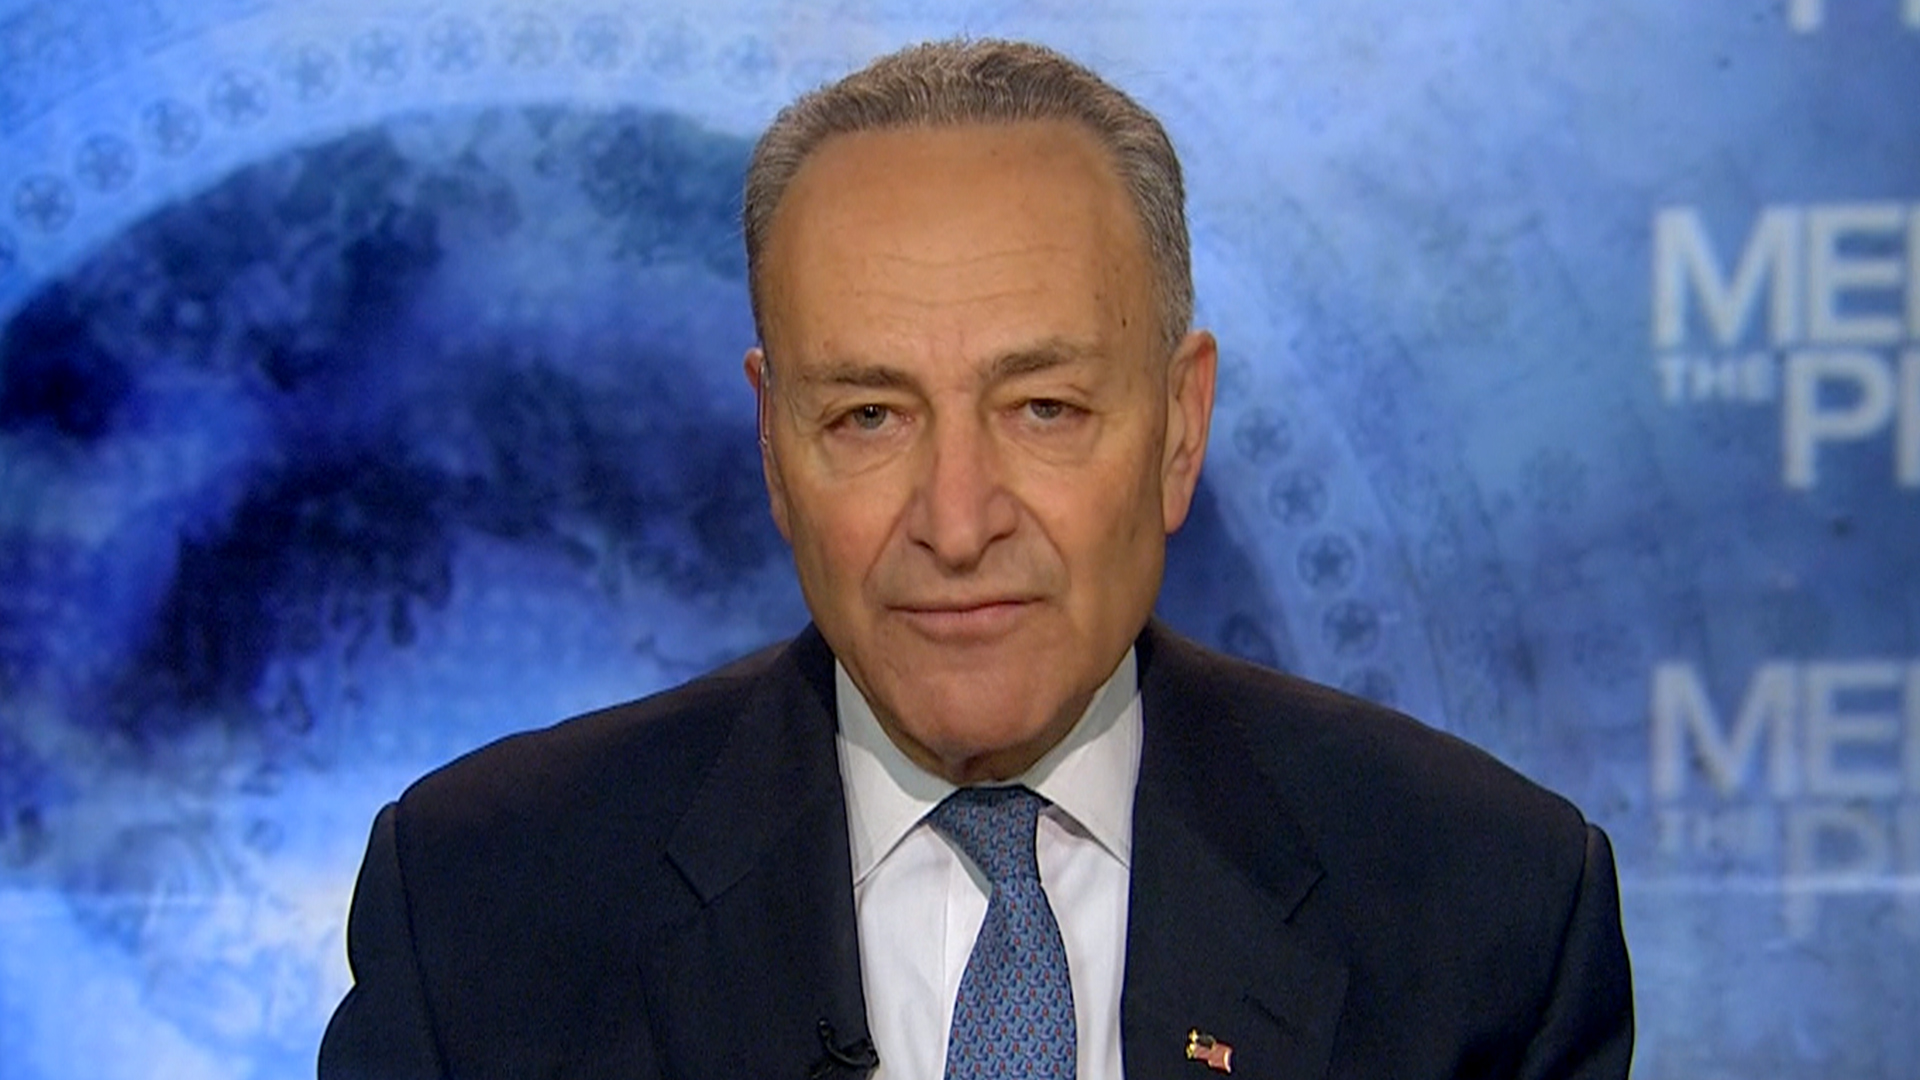 Schumer: Delay Date Immigration Overhaul Would Take Effect